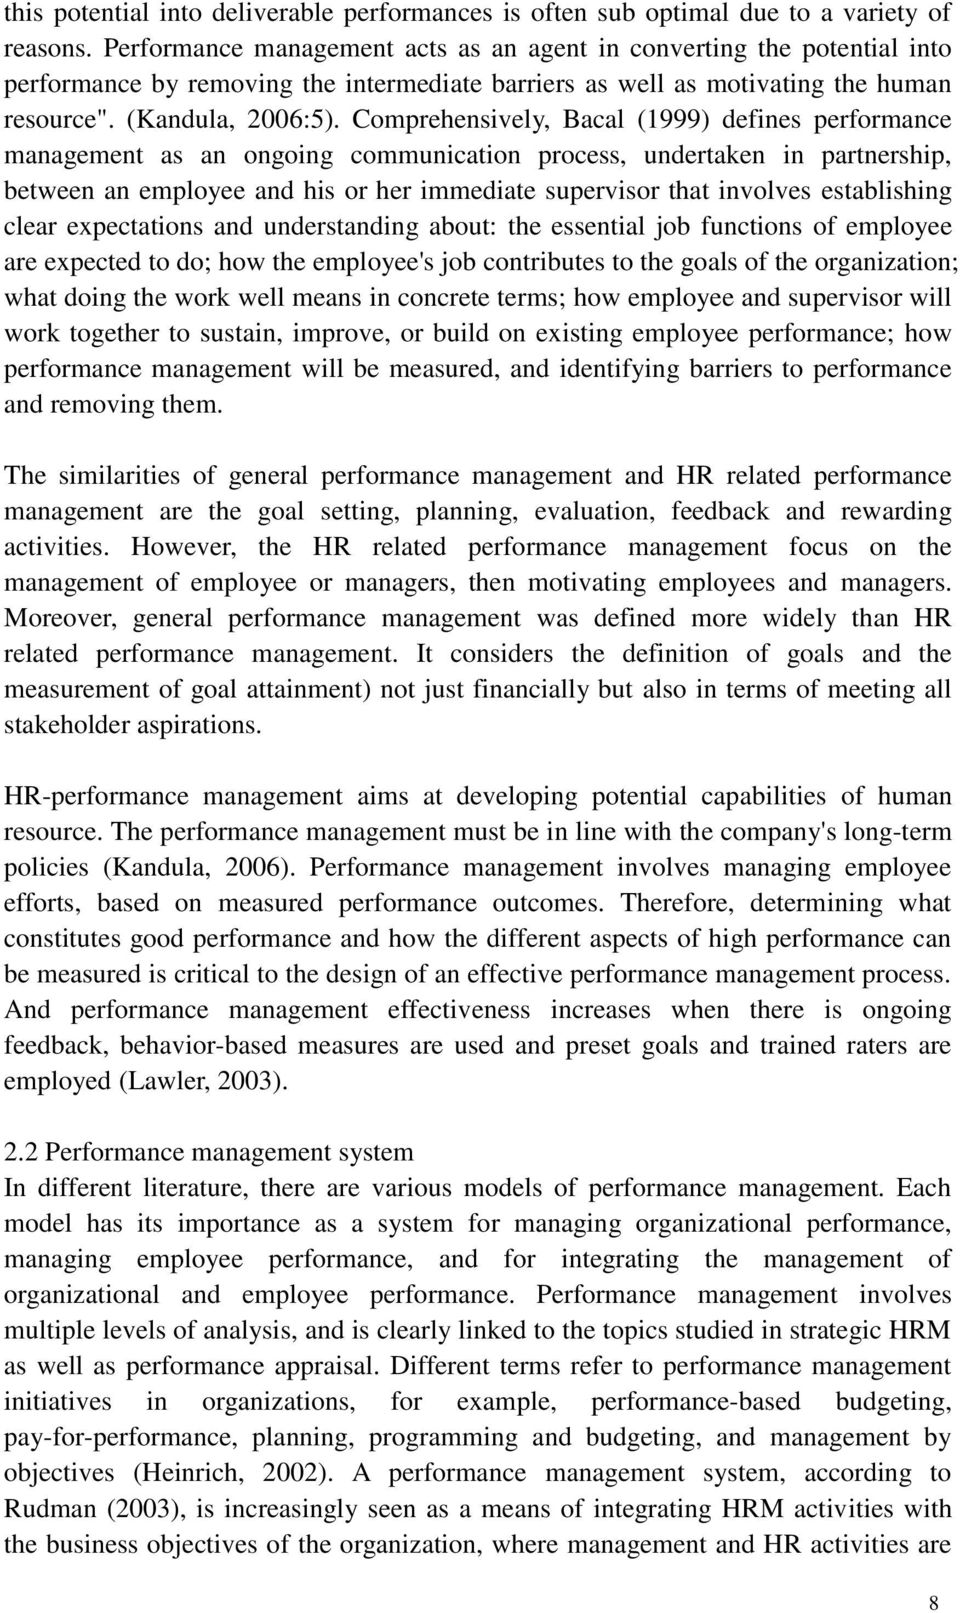 Comprehensively, Bacal (1999) defines performance management as an ongoing communication process, undertaken in partnership, between an employee and his or her immediate supervisor that involves